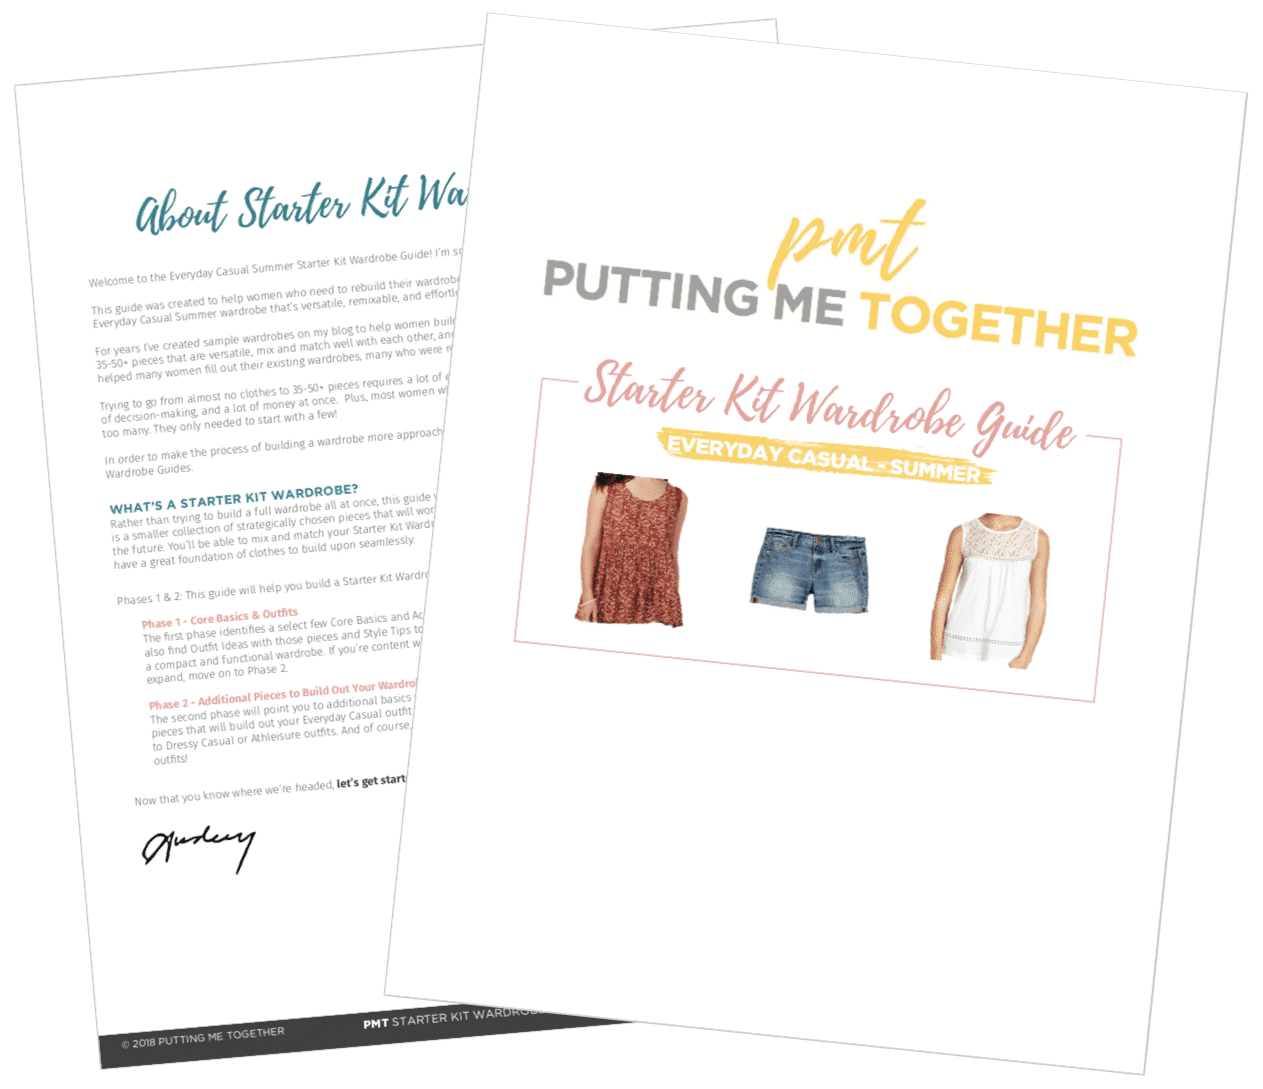 Summer Starter Kit Wardrobe Guide - Build a Wardrobe You Love with Ease